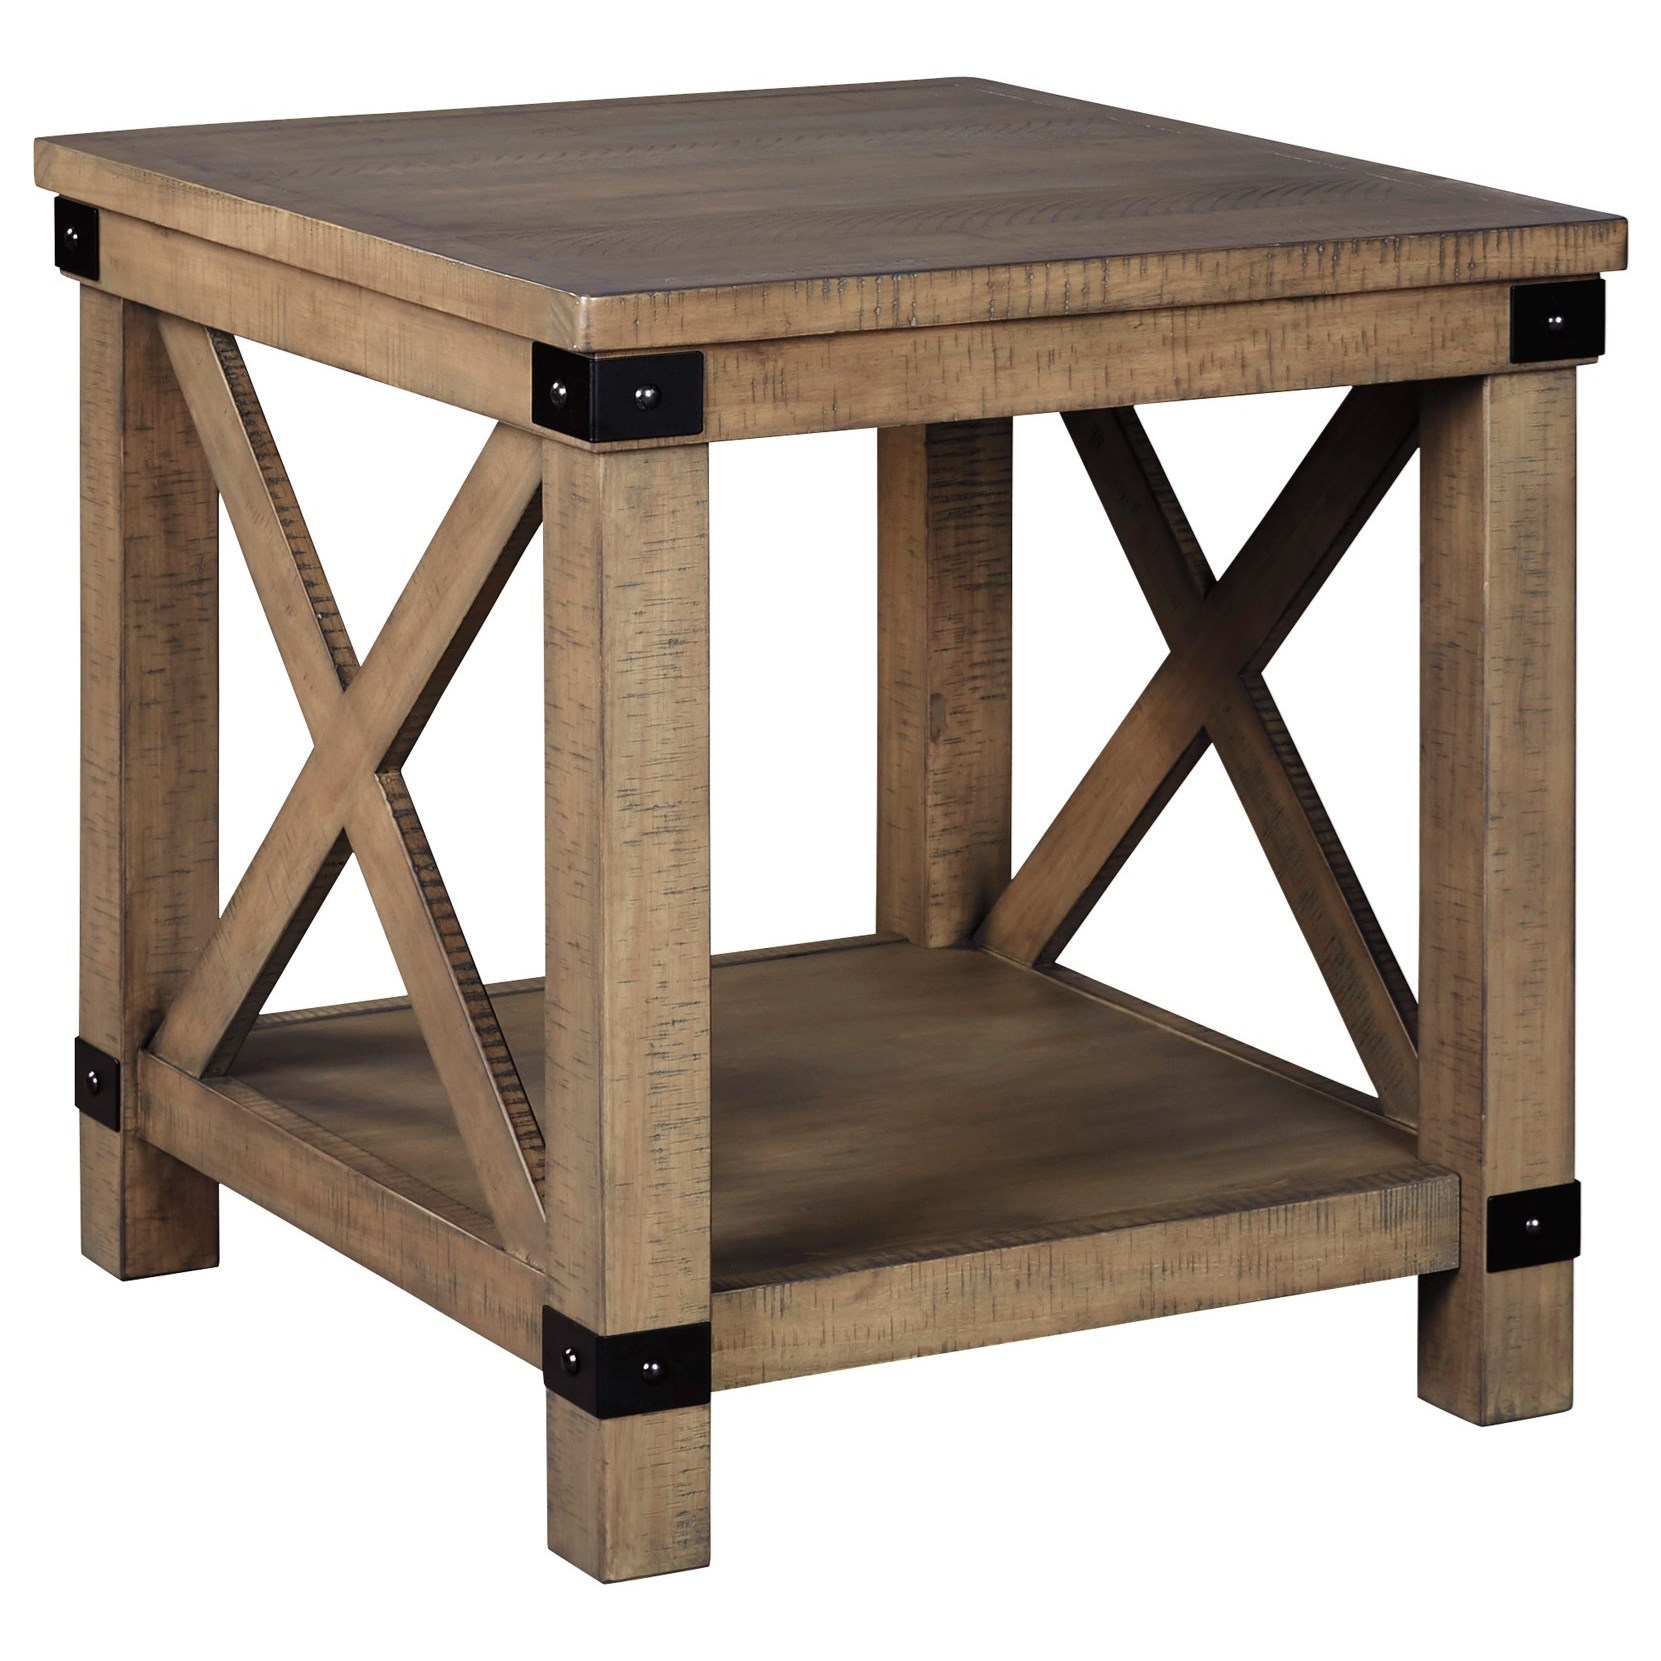 Aldwin Rectangular End Table by Benchcraft at Virginia Furniture Market